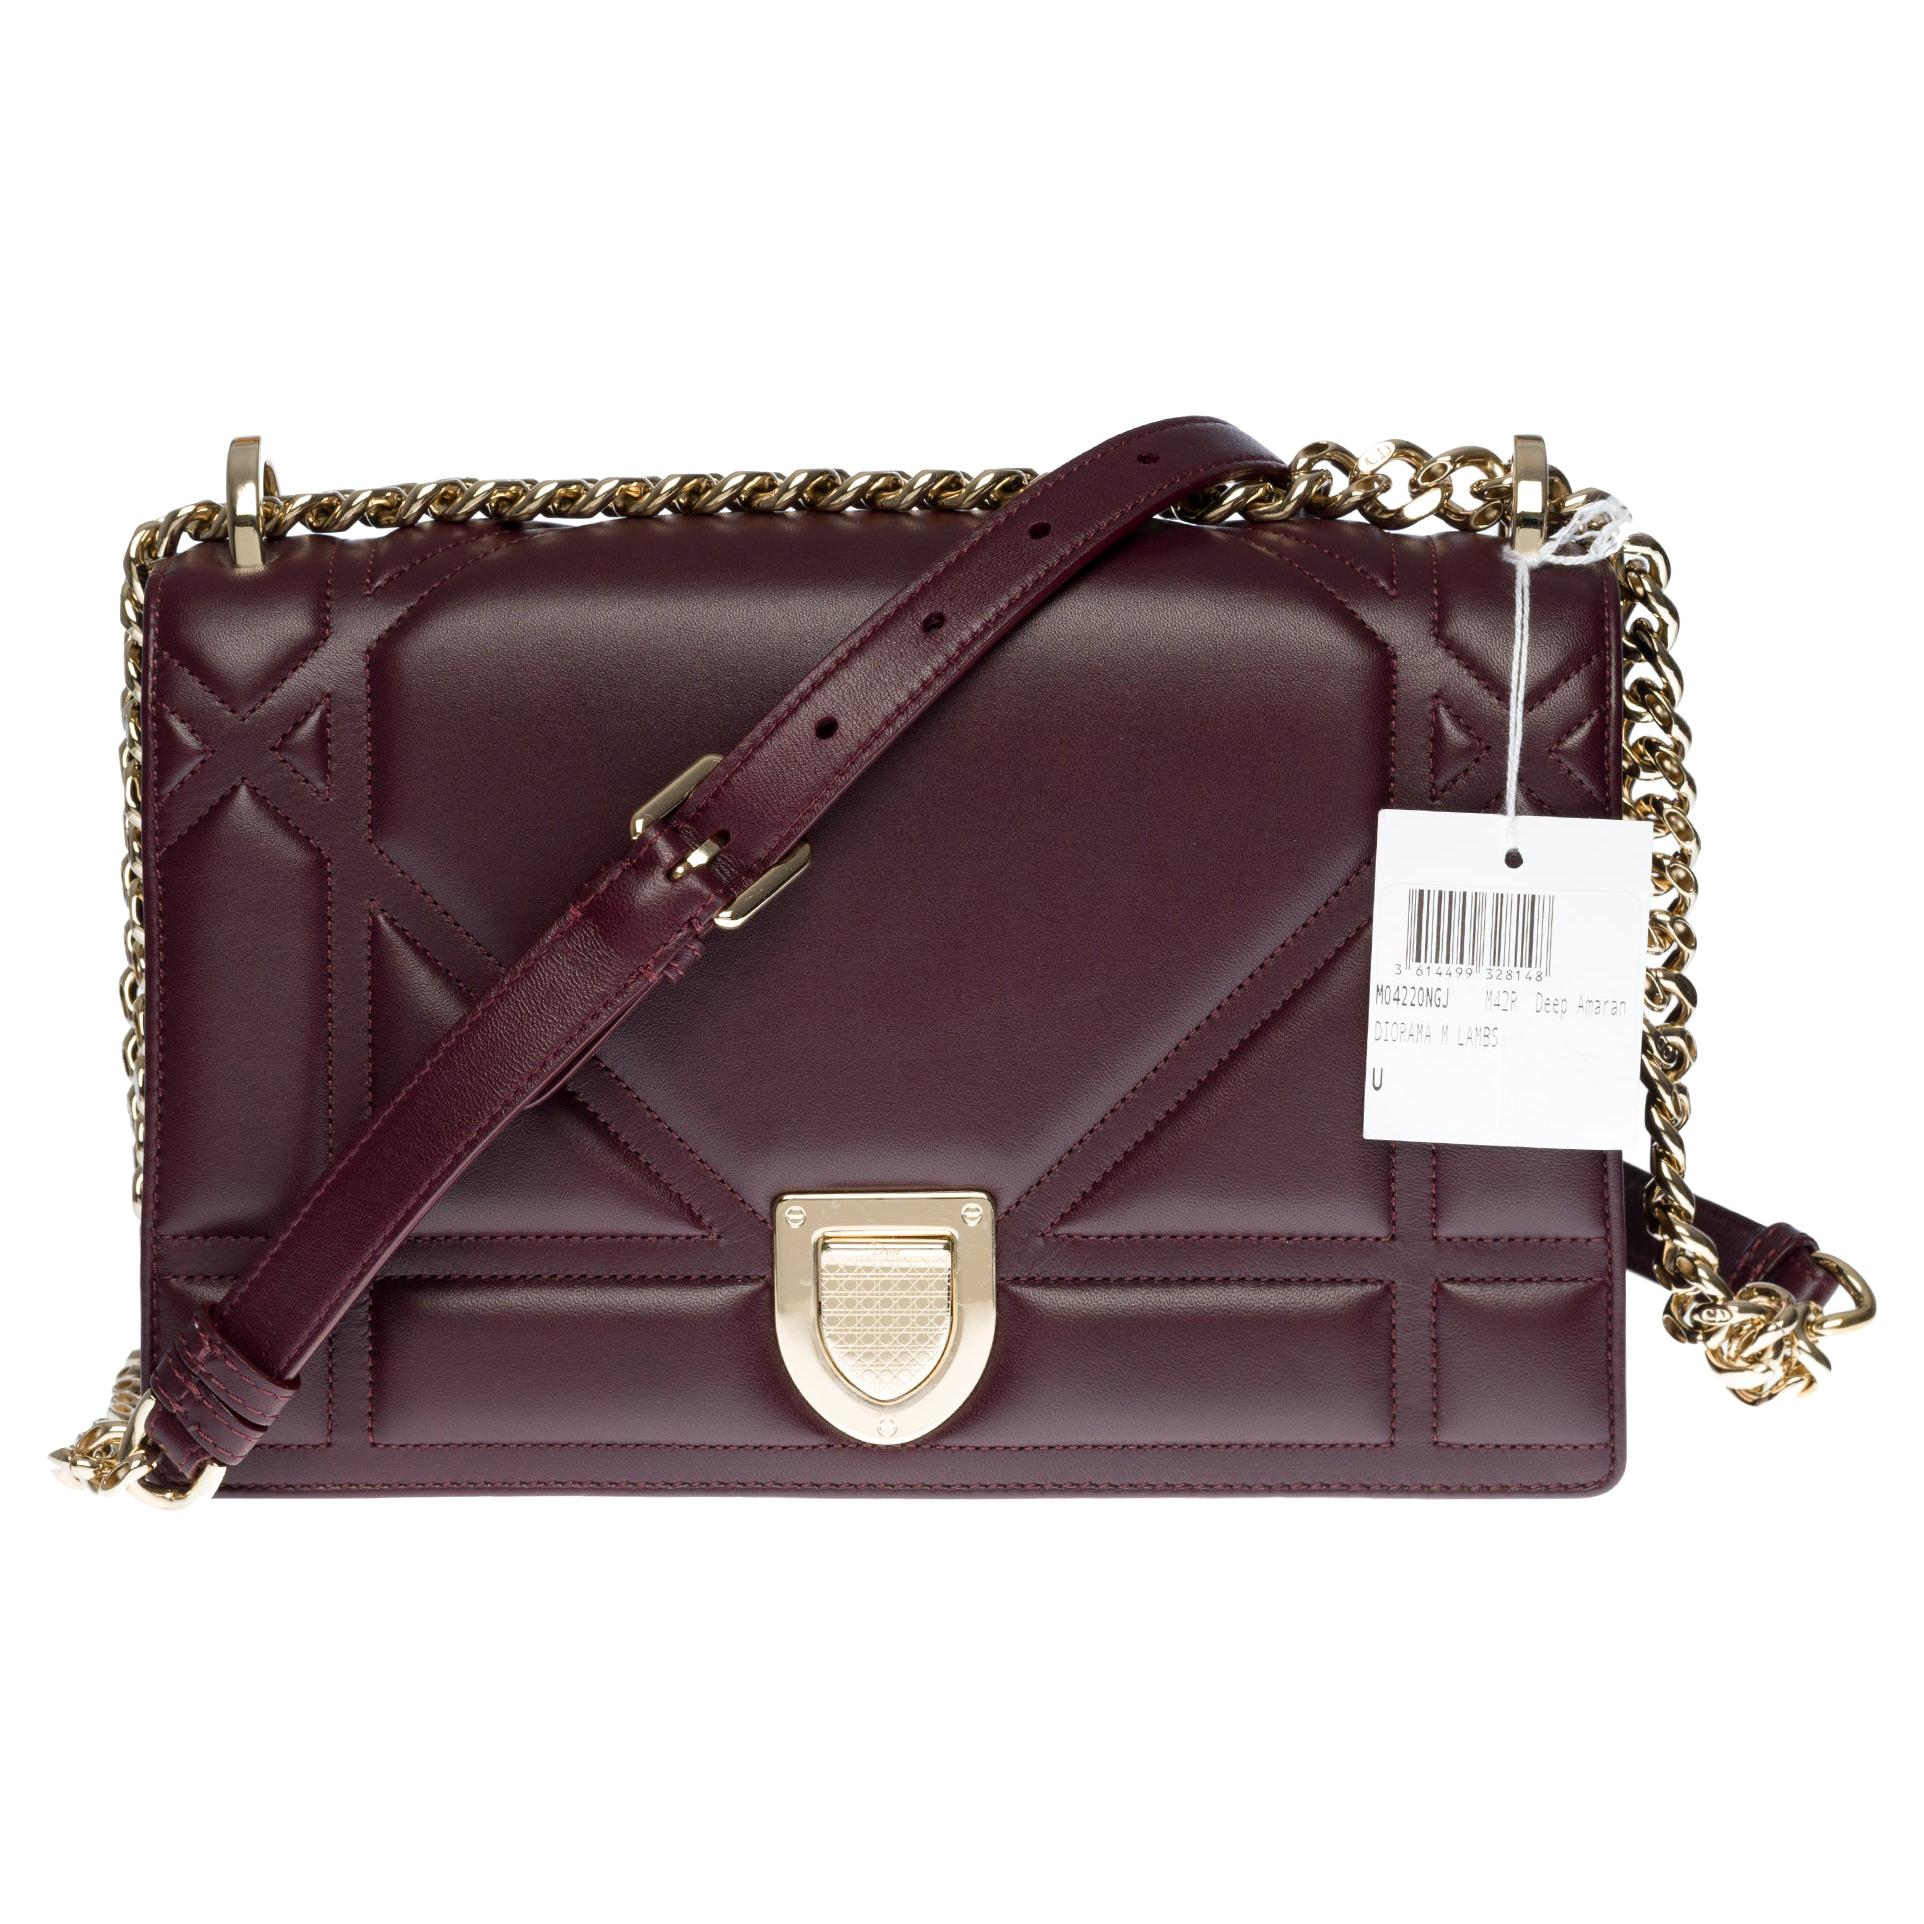 Brand New /Christian Dior Diorama Shoulder bag in Purple cannage leather, SHW